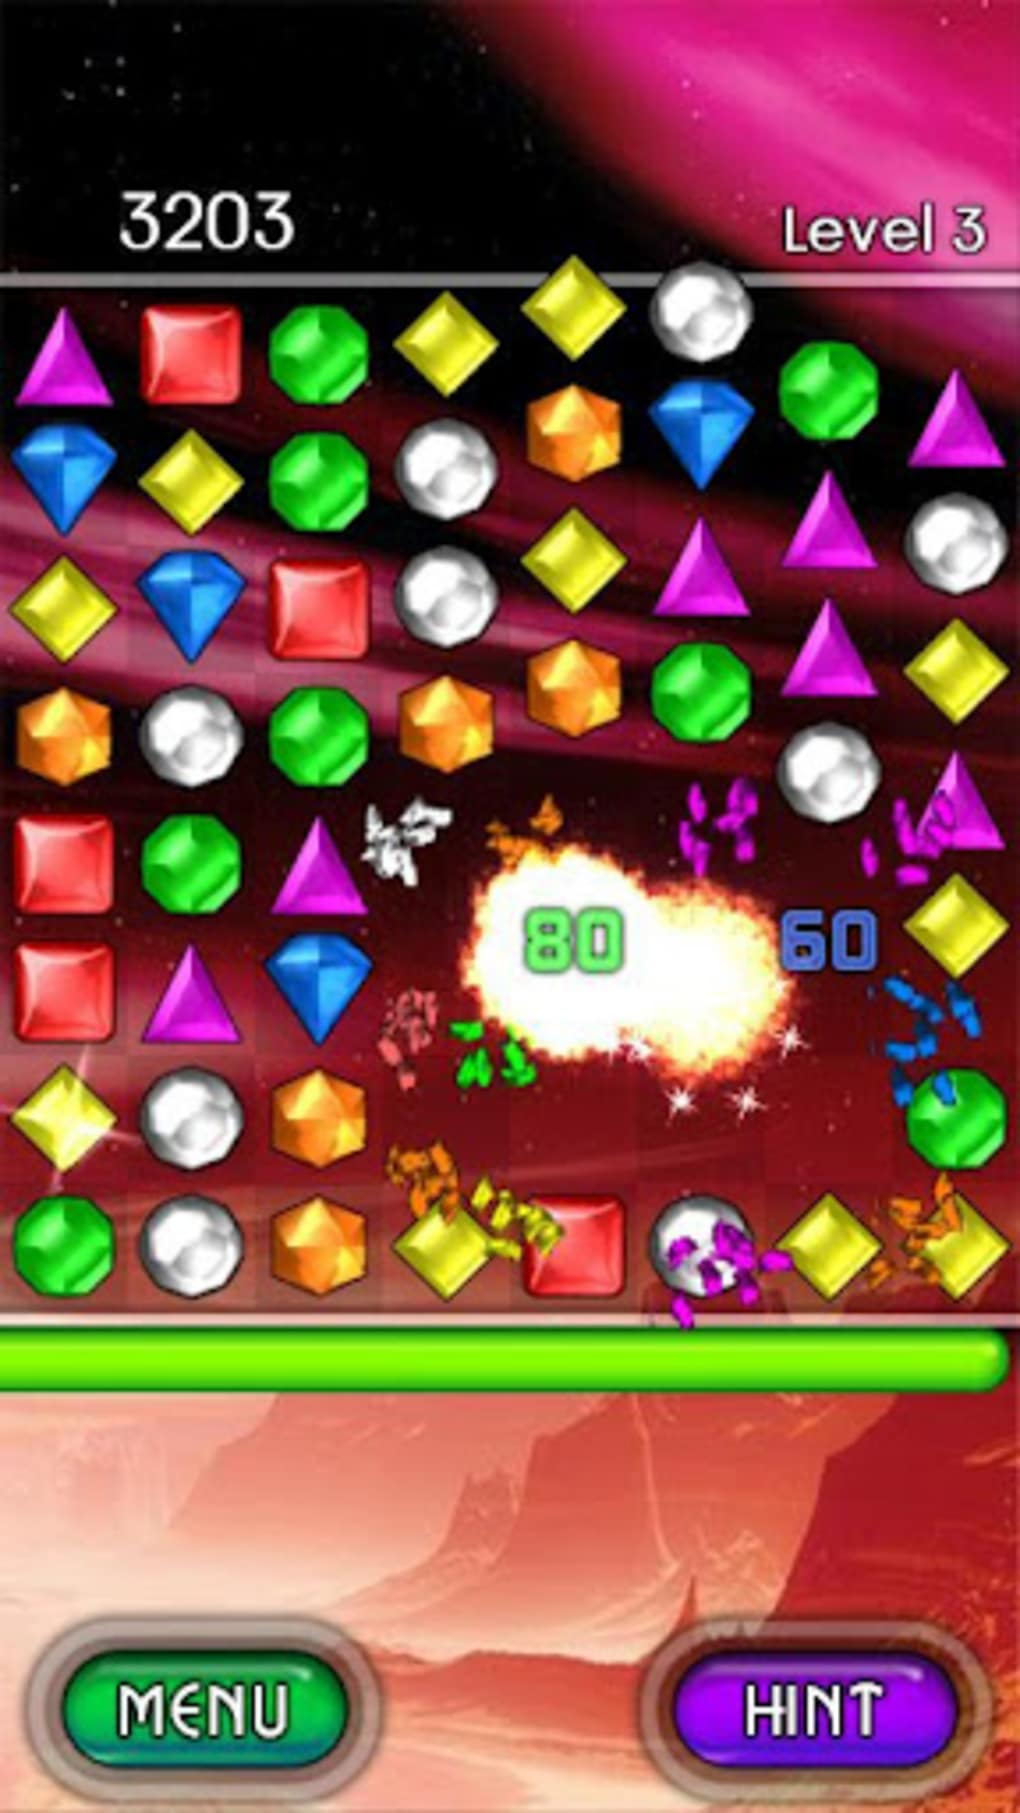 Bejeweled Classic for Android - APK Download